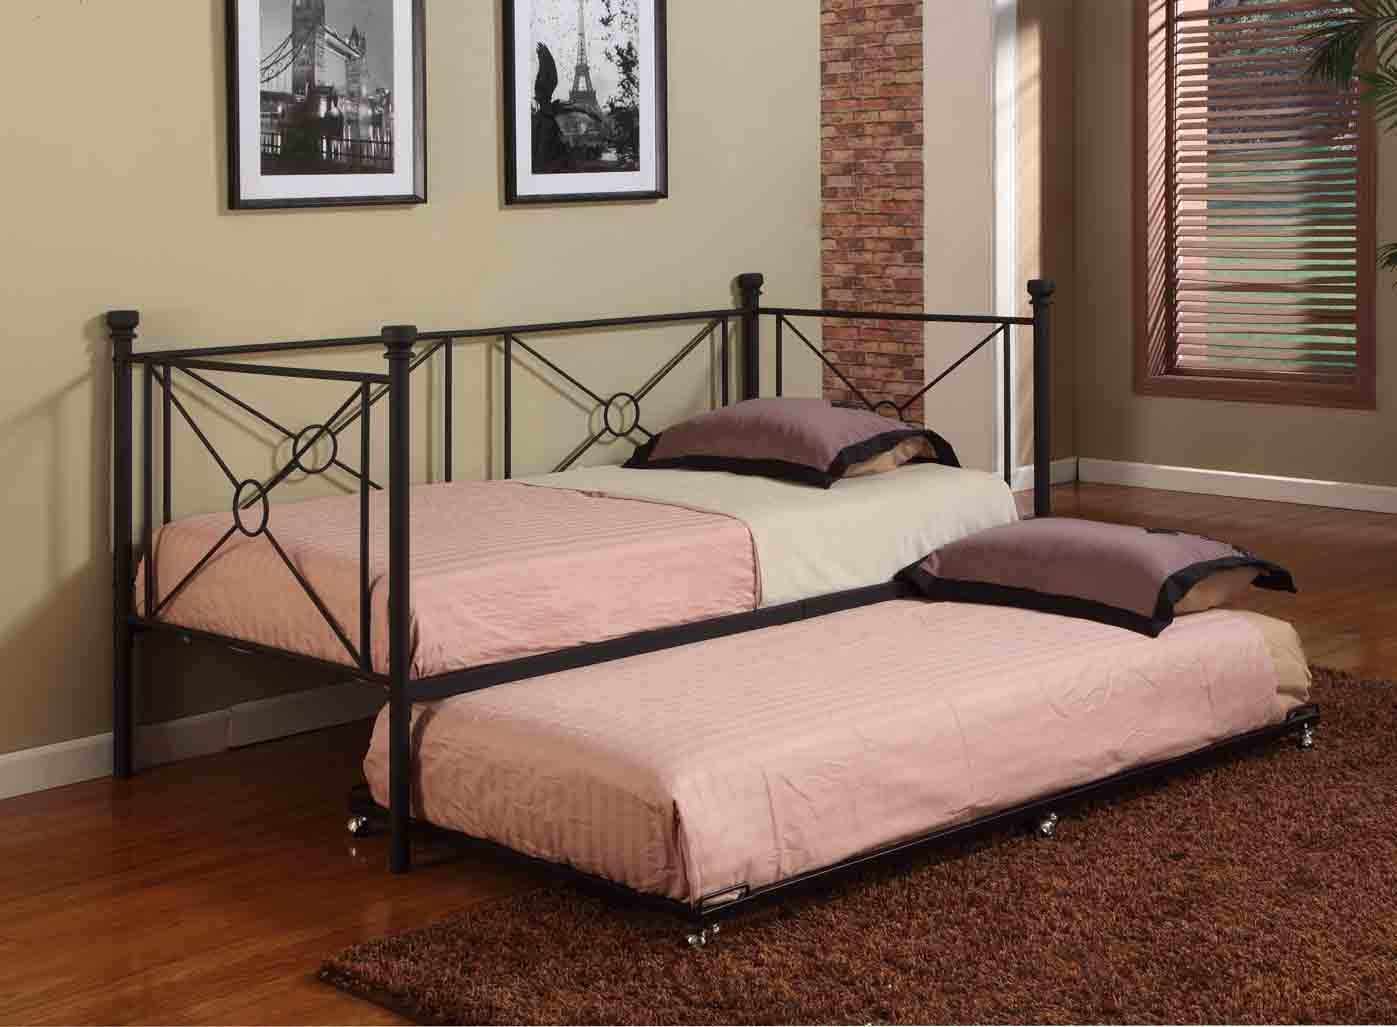 texture black metal twin size day bed daybed frame with rails trundle new ebay. Black Bedroom Furniture Sets. Home Design Ideas